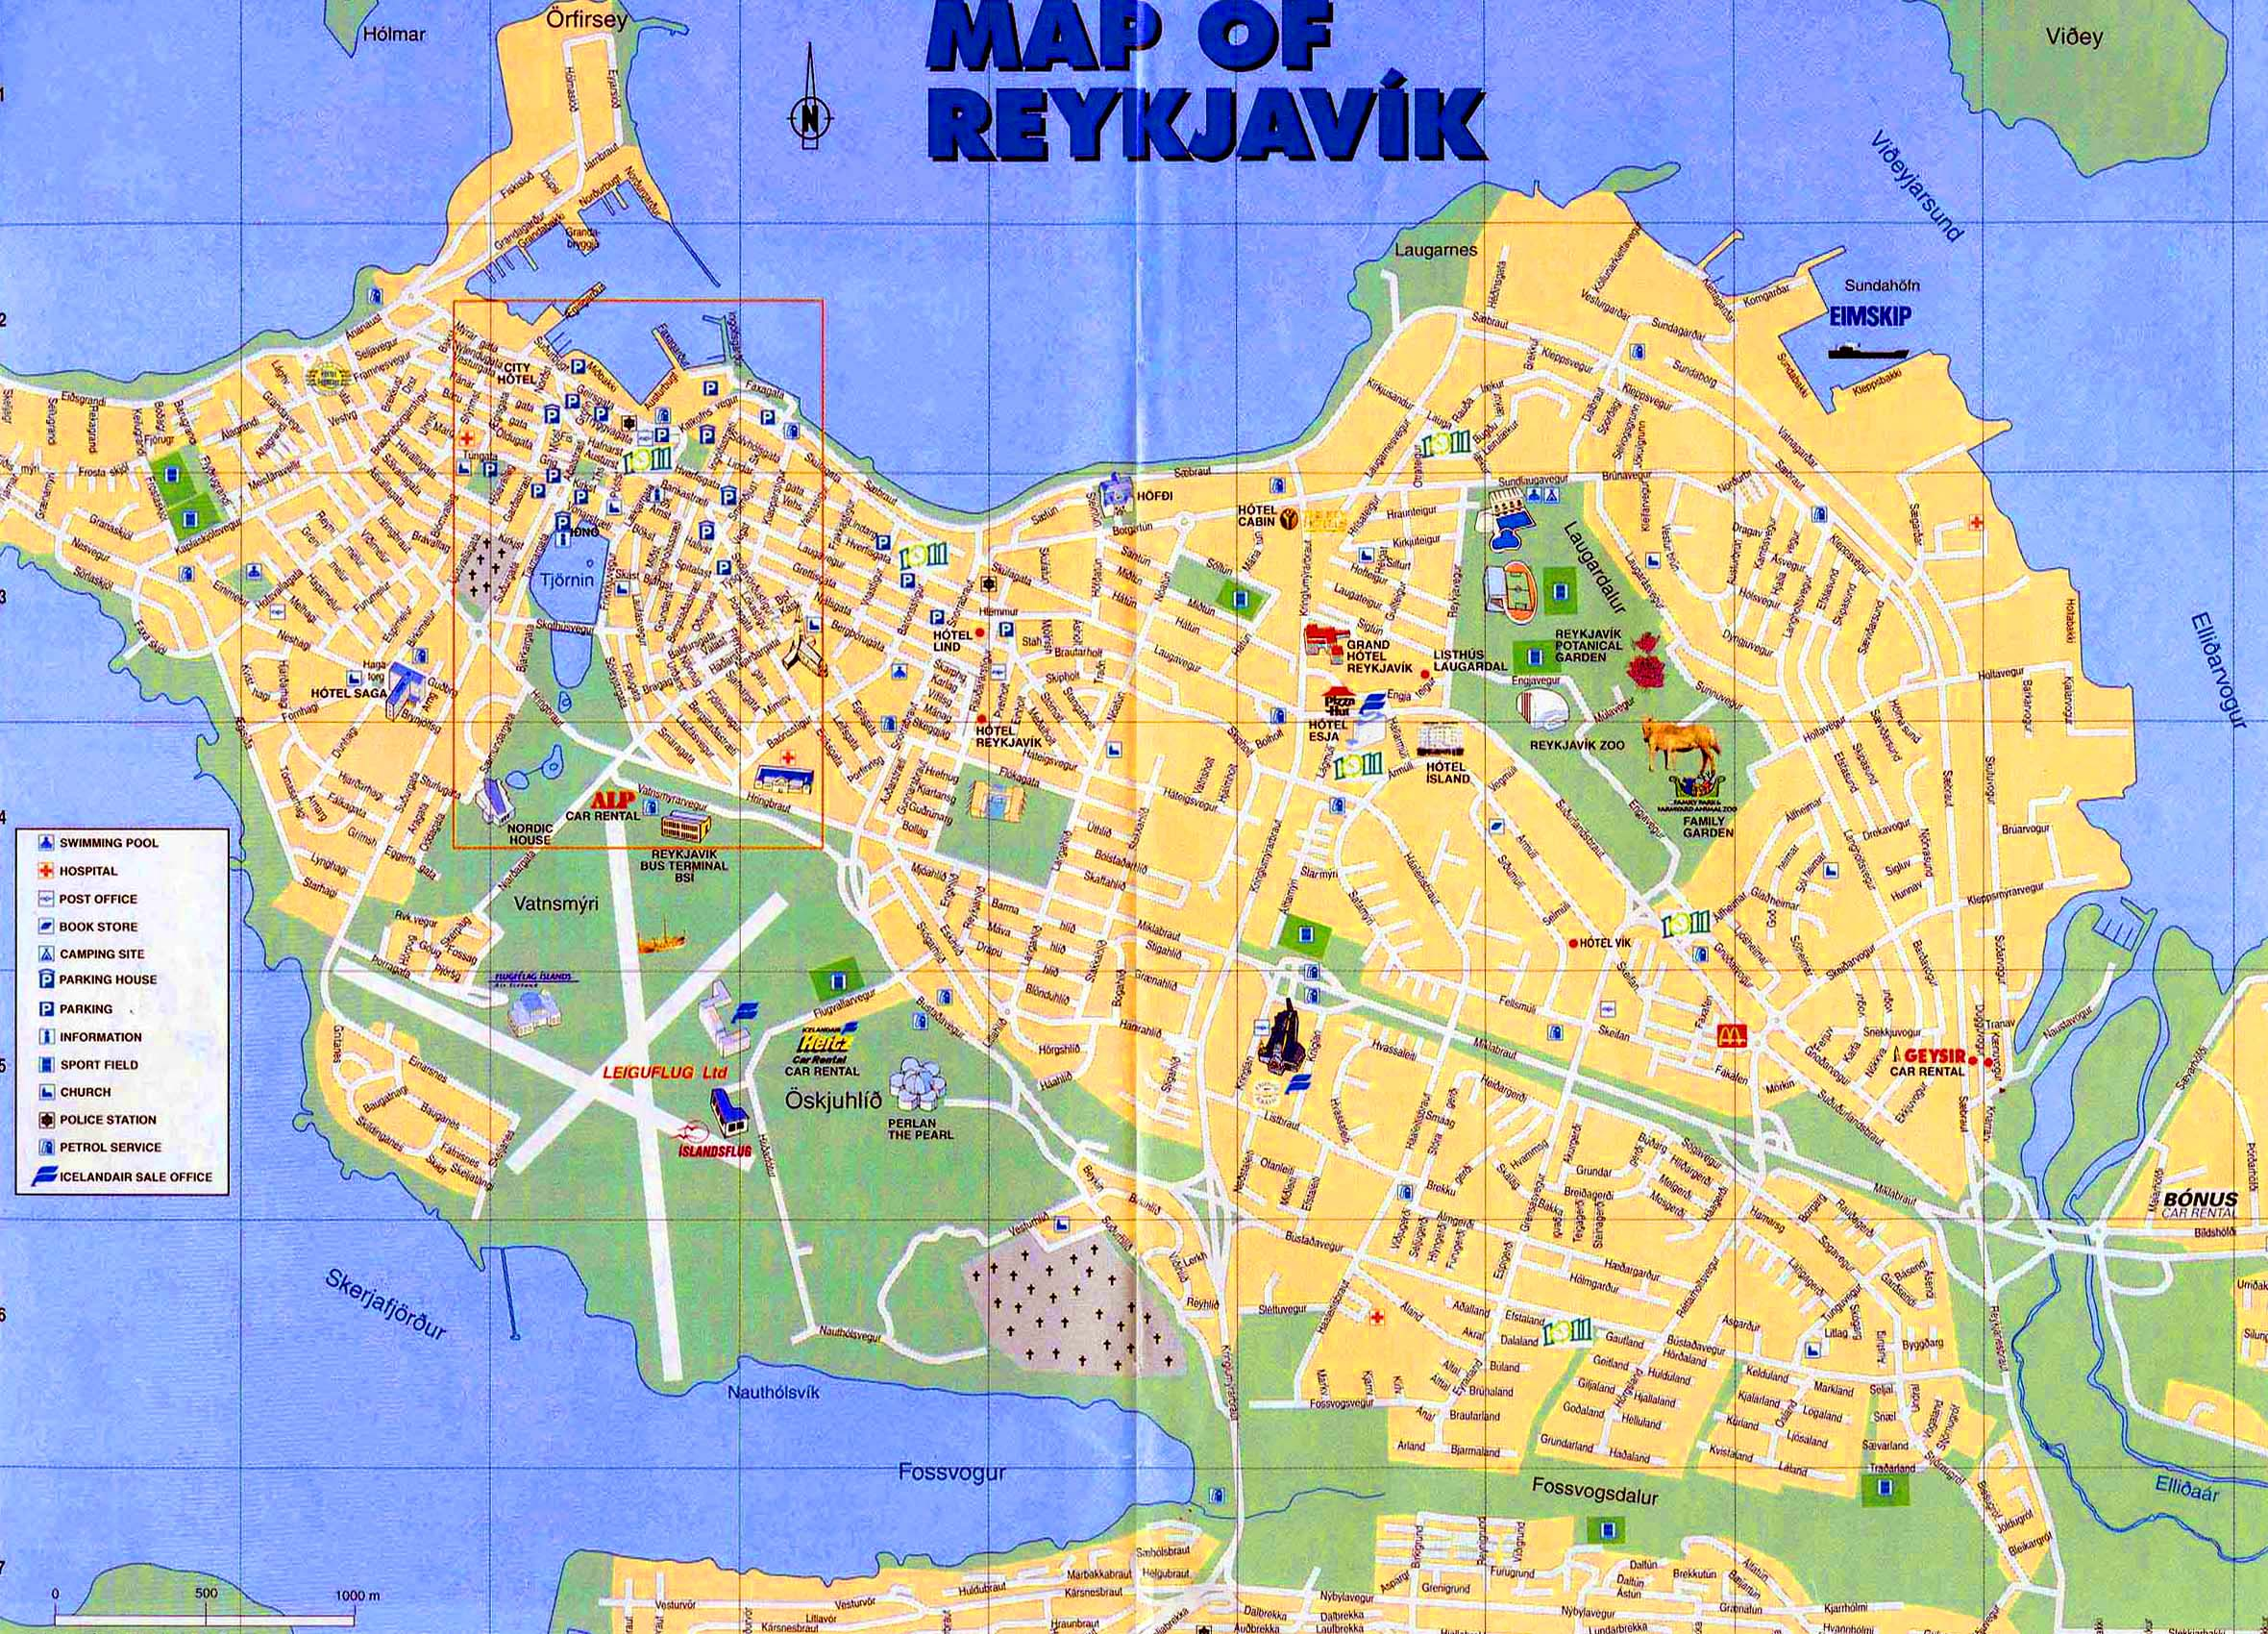 Large reykjavik maps for free download and print high resolution large map of reykjavik 1 gumiabroncs Choice Image